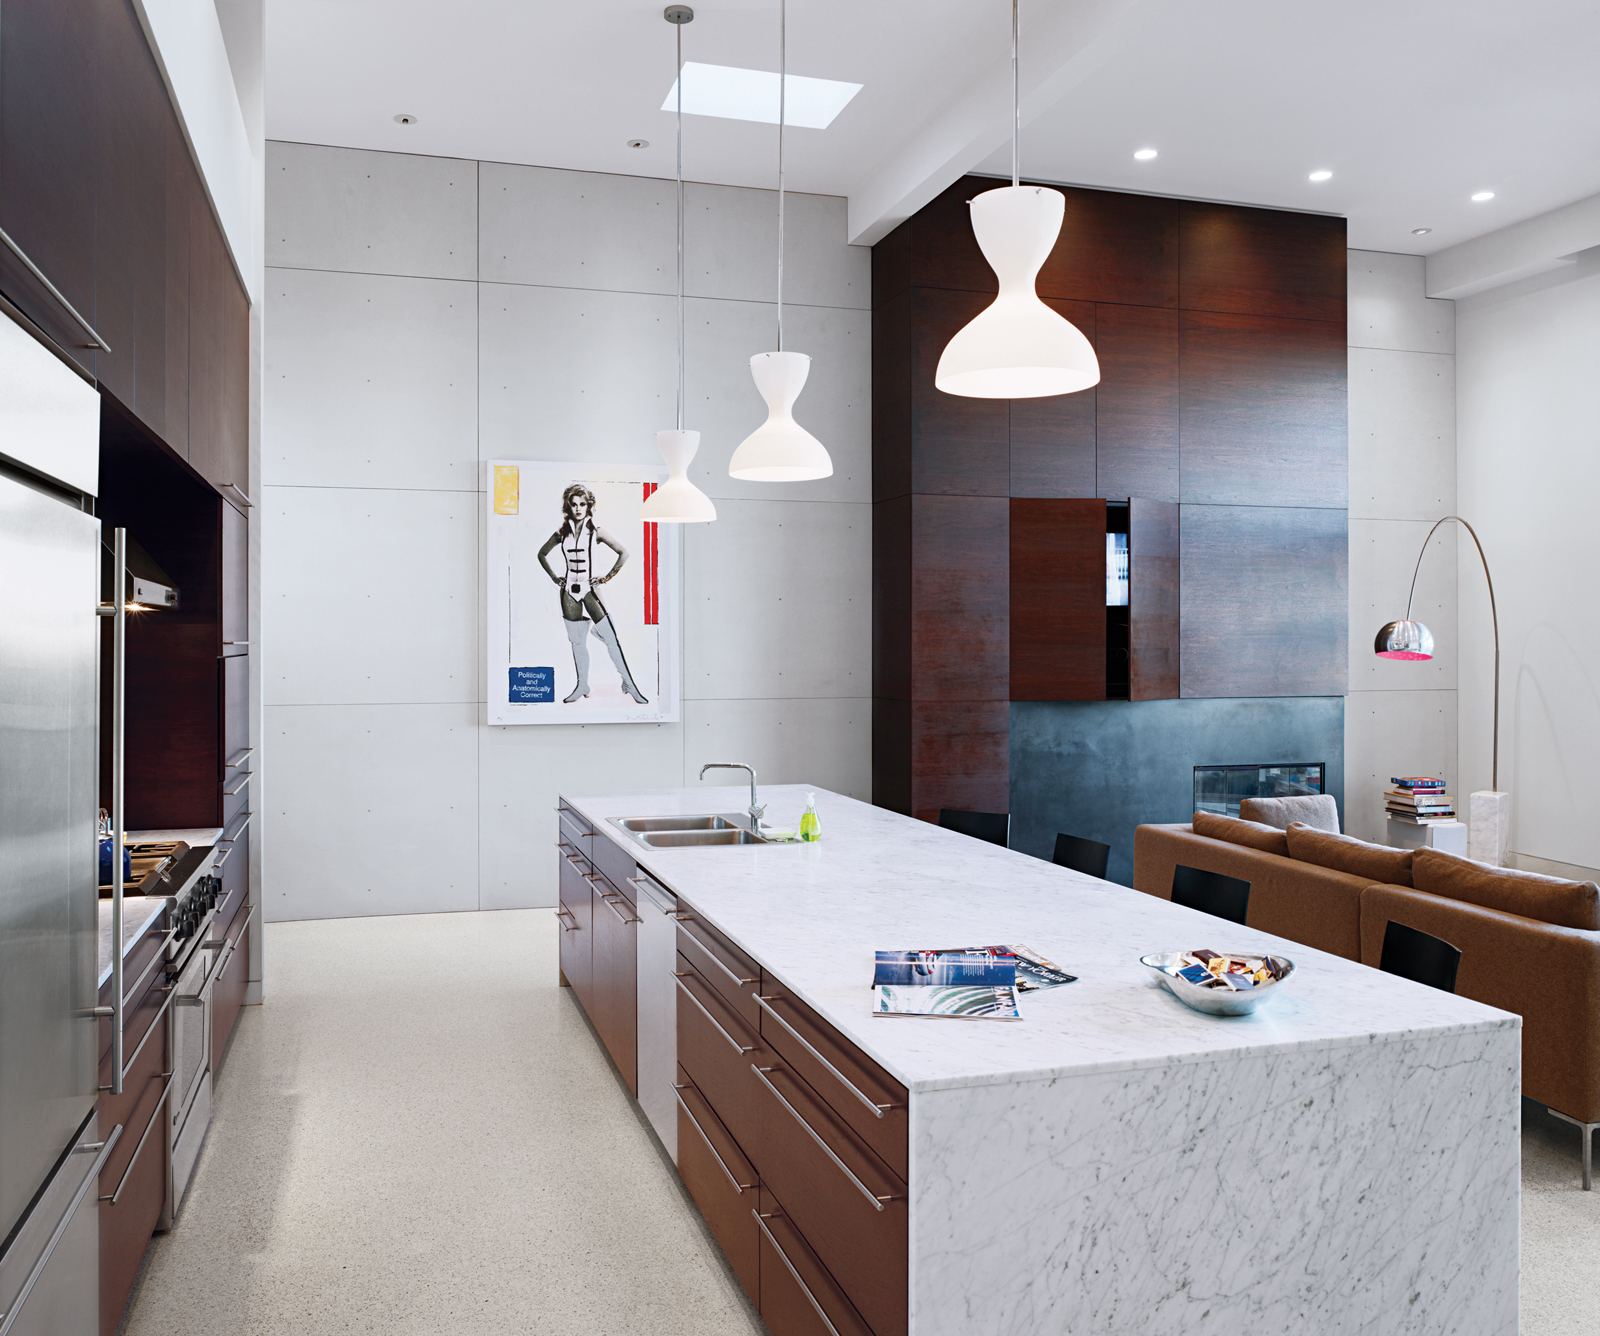 When Nilus De Matran renovated this San Francisco kitchen ten years ago, he chose materials that would not only compliment and unify the open space—dark walnut, terrazzo flooring, and Carrara marble—but also materials that would stand the test of time.